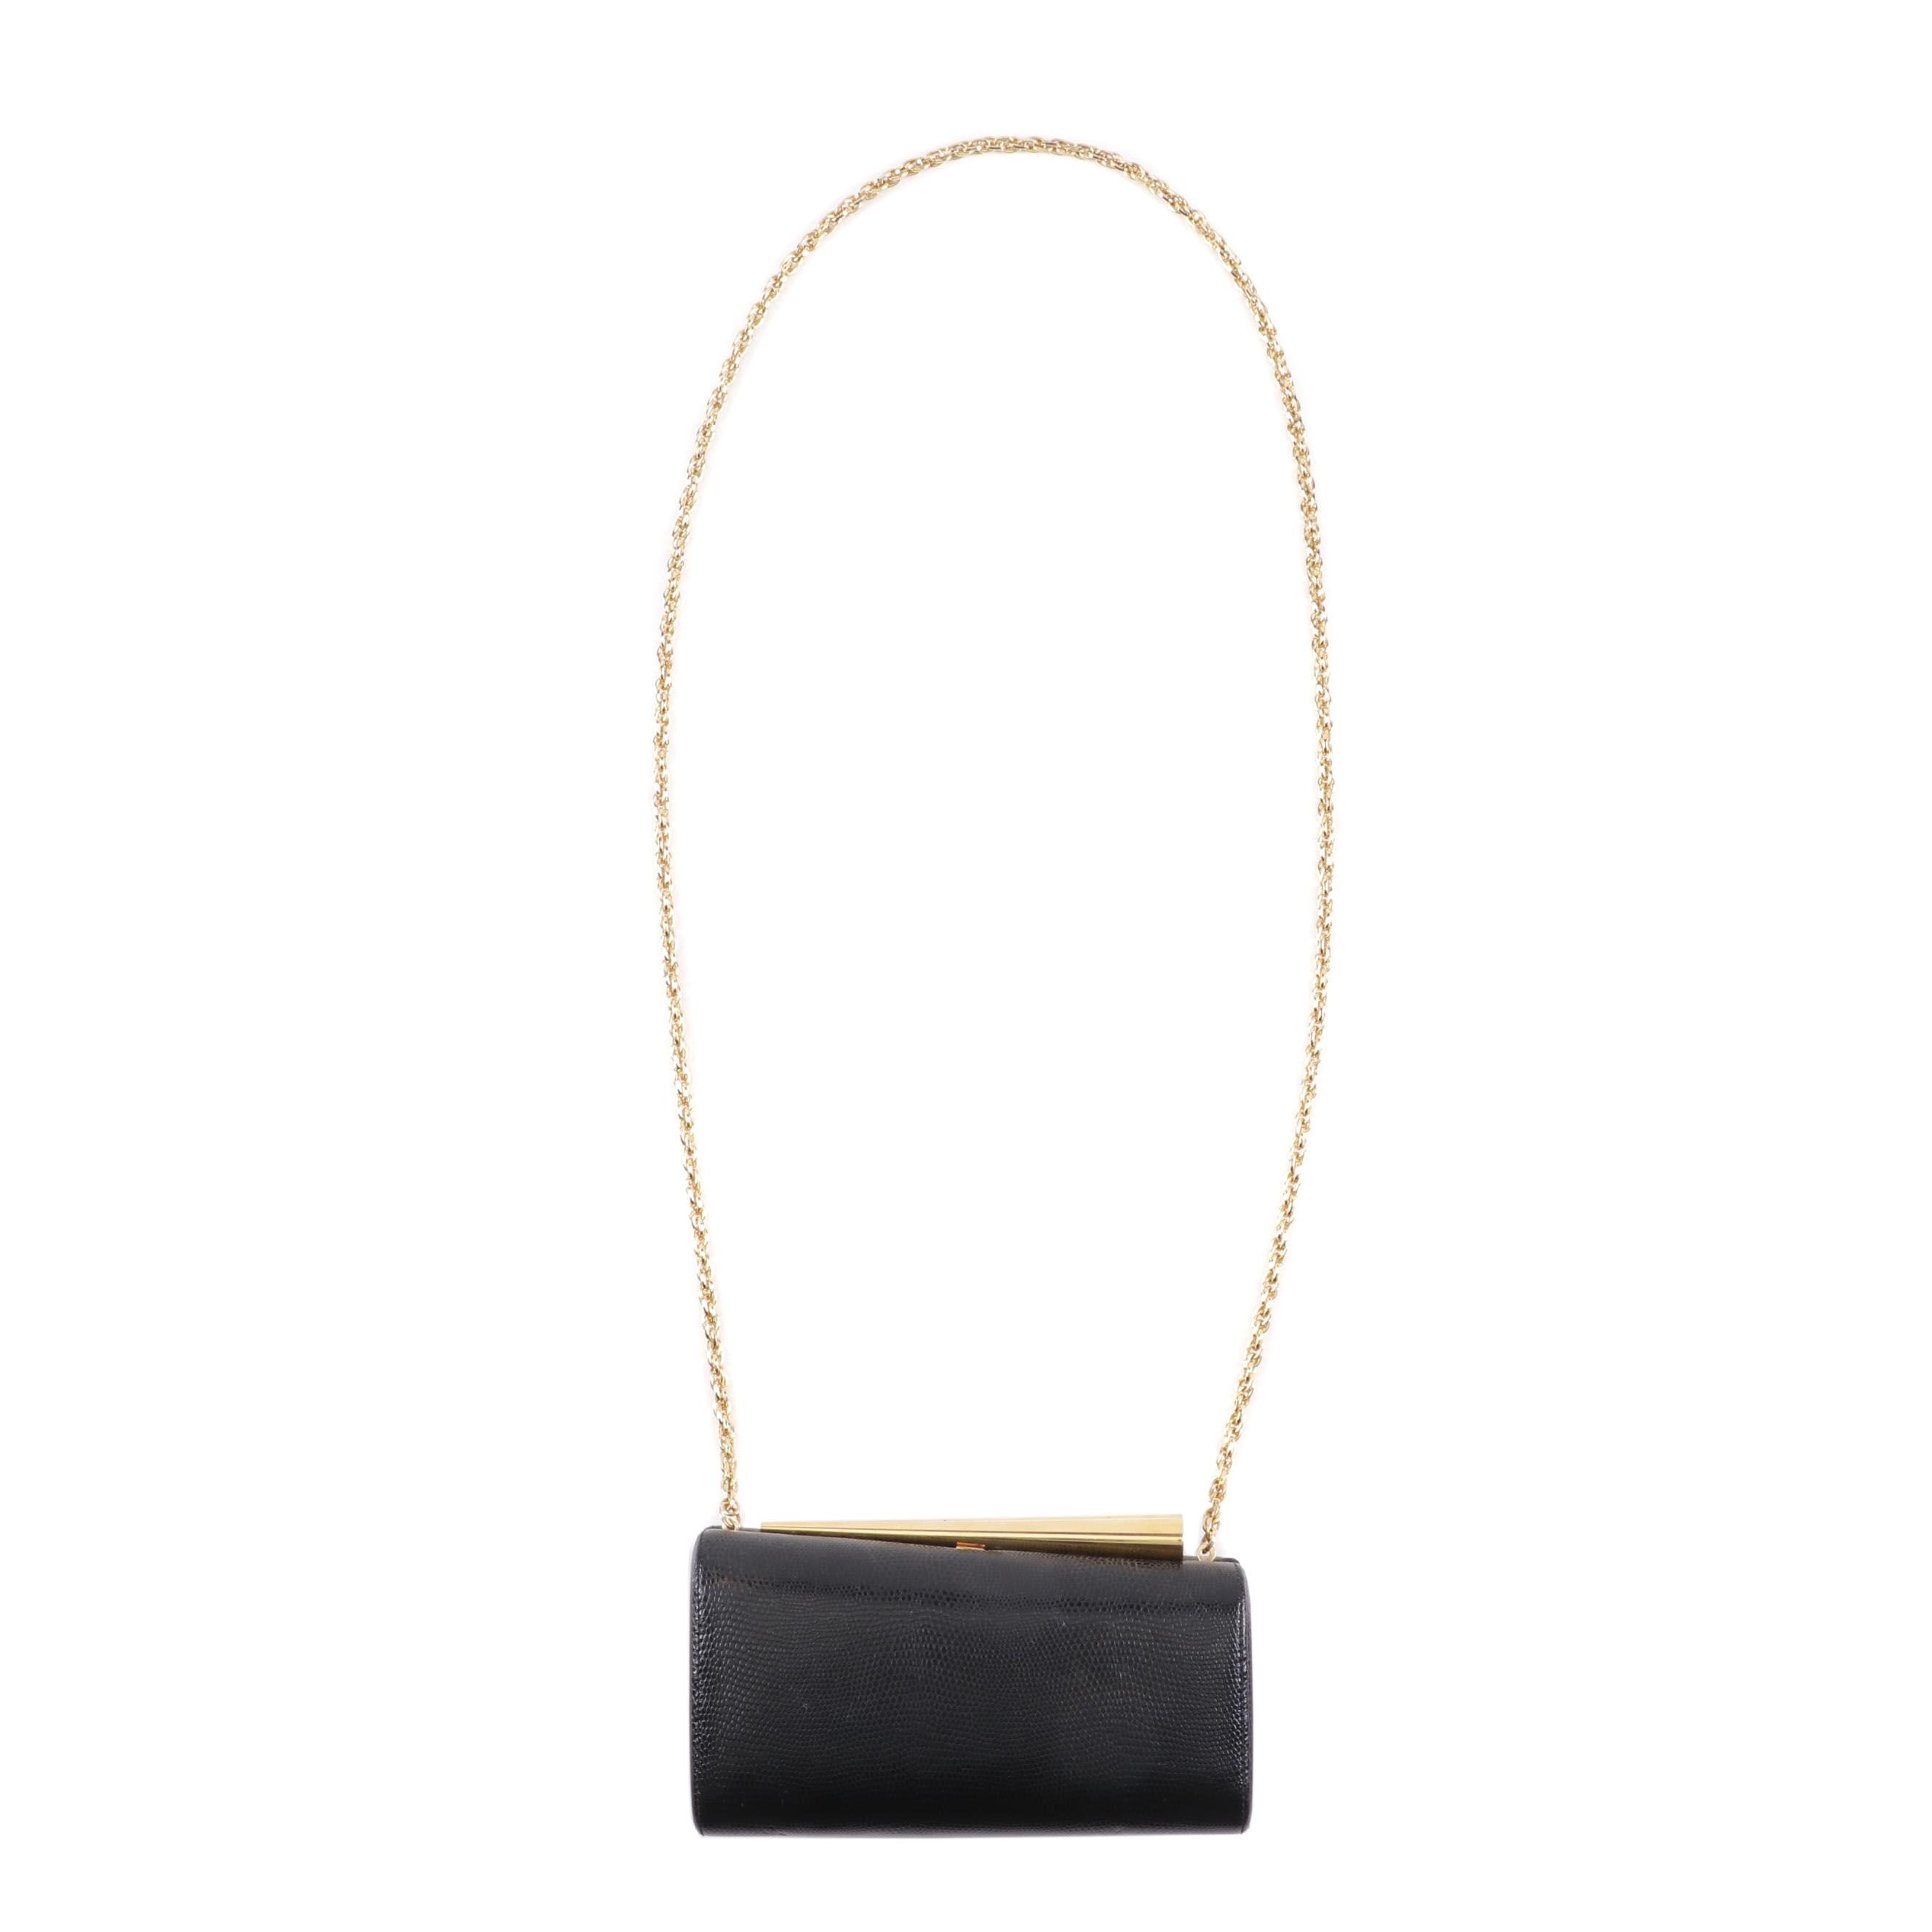 Rodo Lizard Embossed Black Leather Chain Strap Shoulder Bag